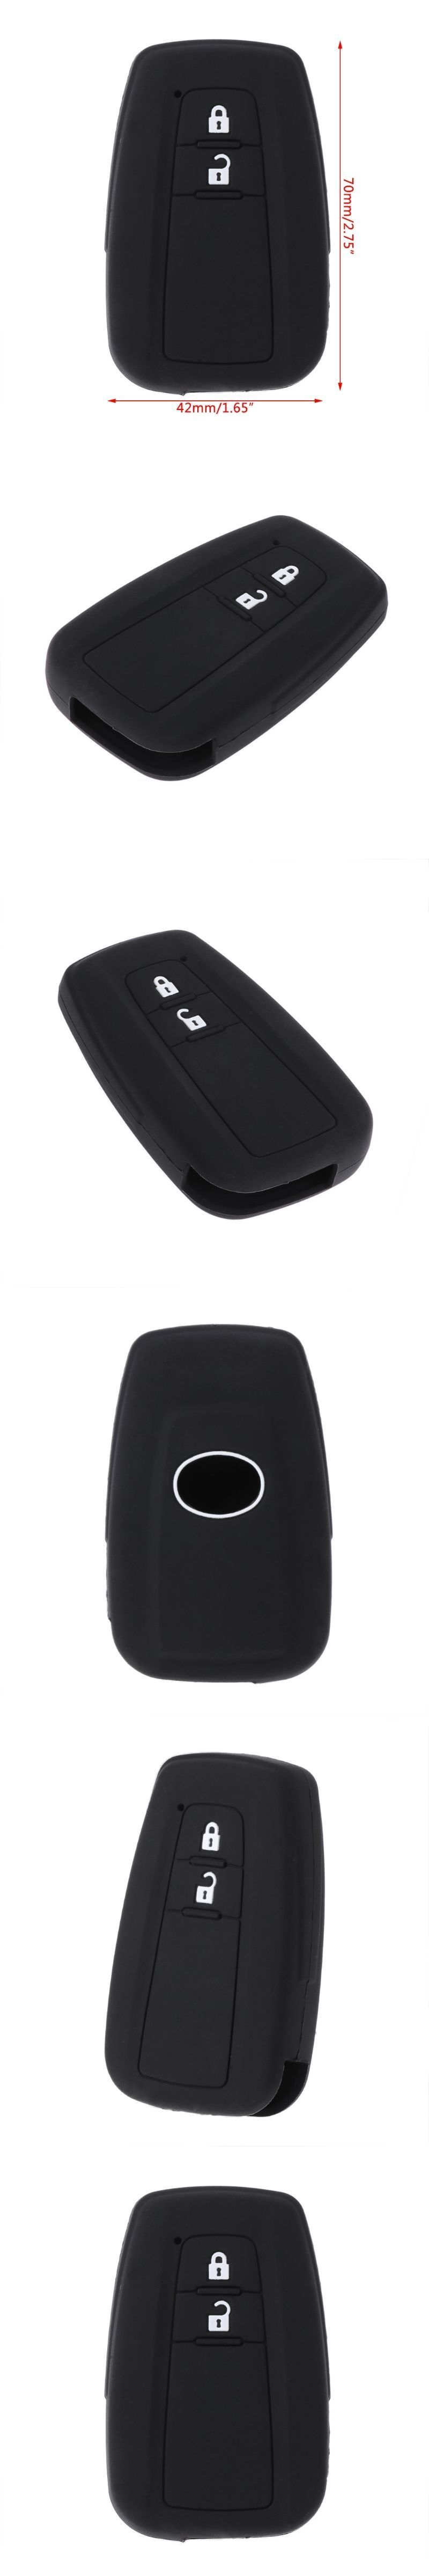 New 2 Buttons Silicone Car Key Fob Case Cover Holder For Toyota CHR